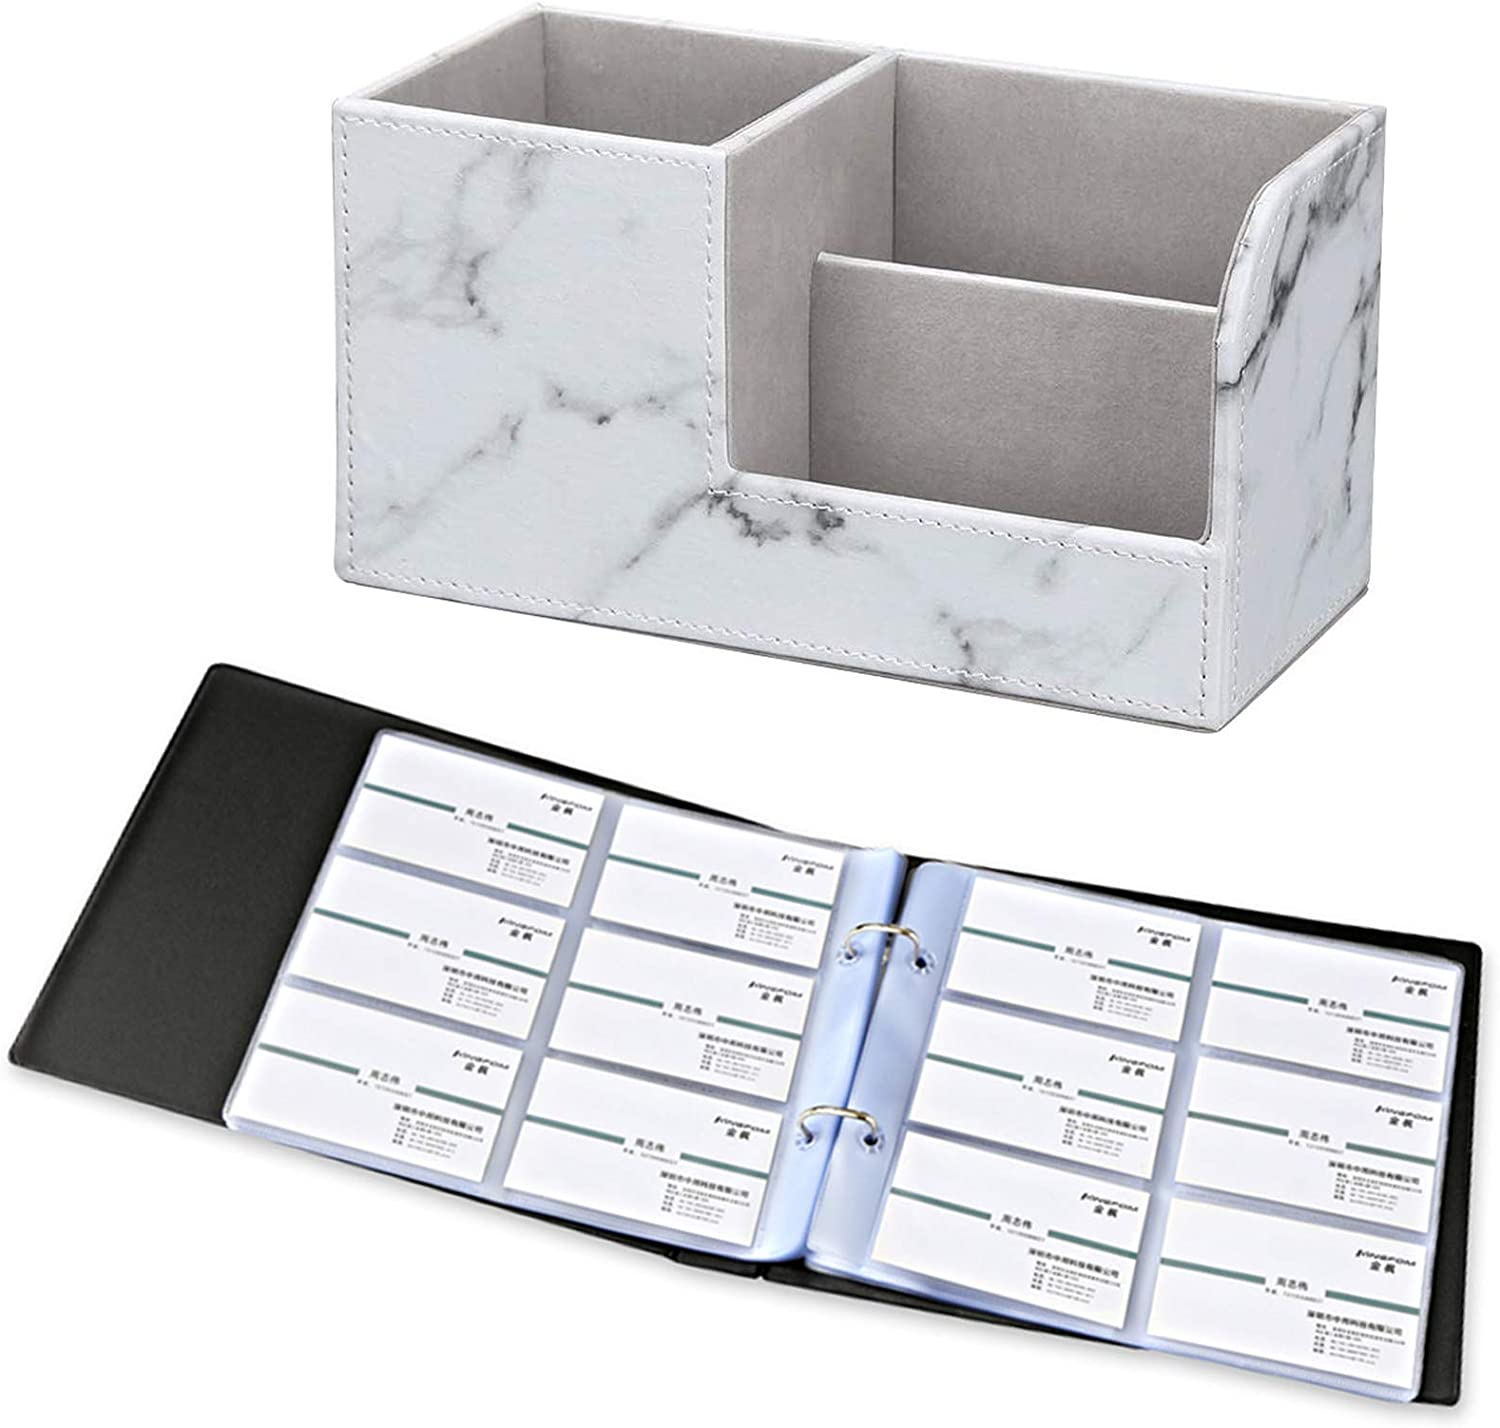 KINGFOM Pu Leather Multi-function Desk Organizer Offices Supplies Stationery Storage Box Pen/Pencil,Cell phone, Business Name Cards Remote Control Holder + Business Name Card Organizer Holds 360 Cards